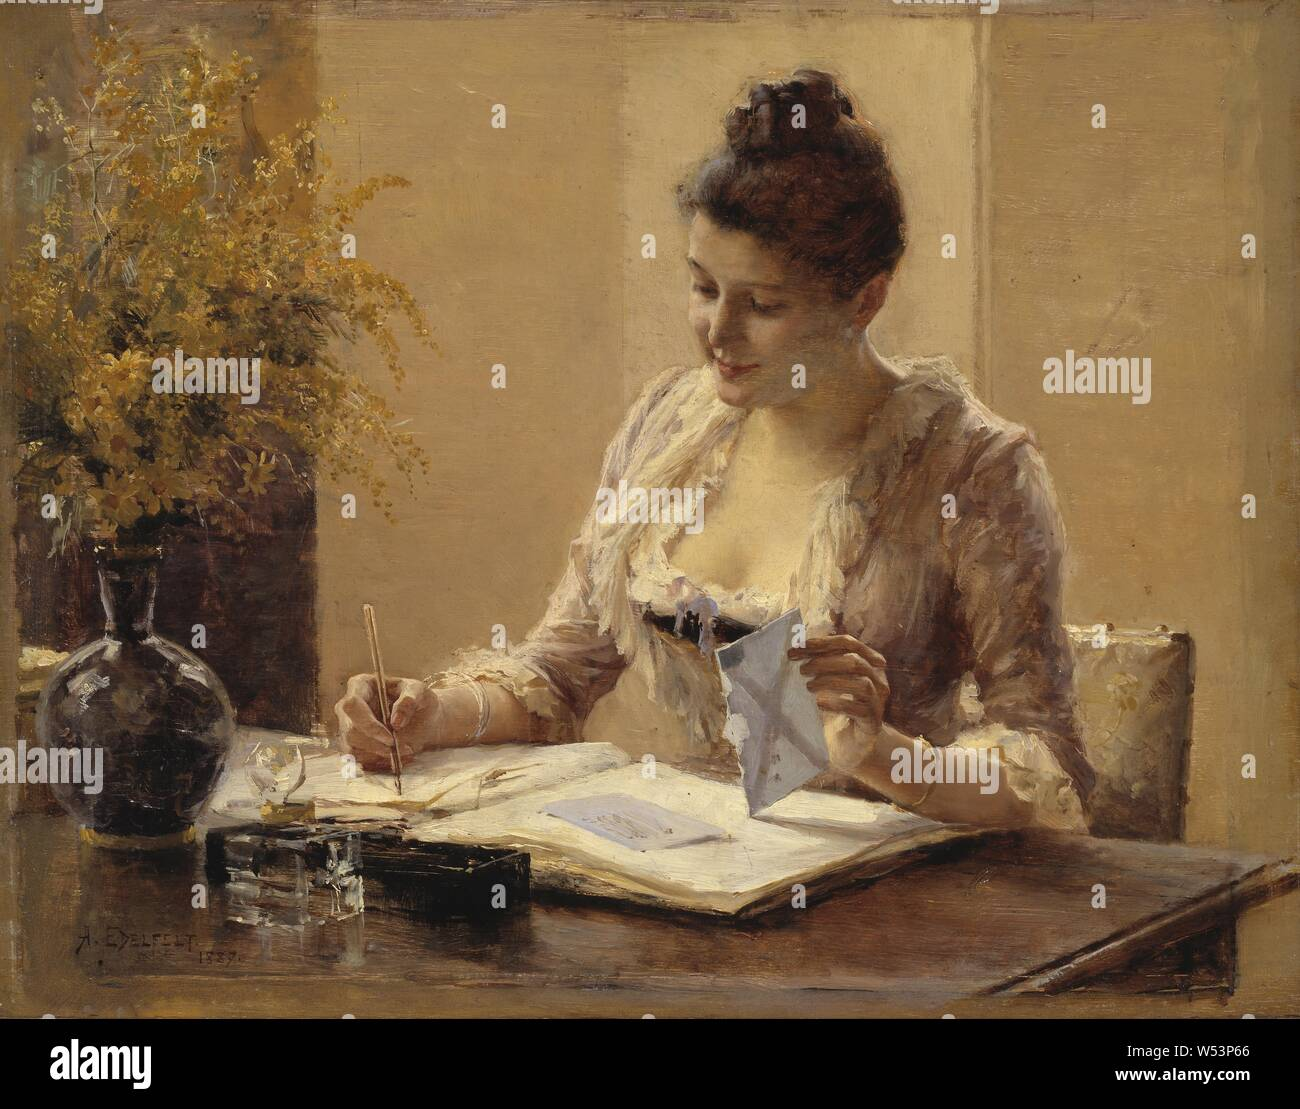 Albert Edelfelt, Lady Writing a Letter, Lady writing letter, painting, 1887, oil on panel, Height, 29 cm (11.4 inches), Width, 37 cm (14.5 inches), Signed, A, Edelfelt, Stock Photo